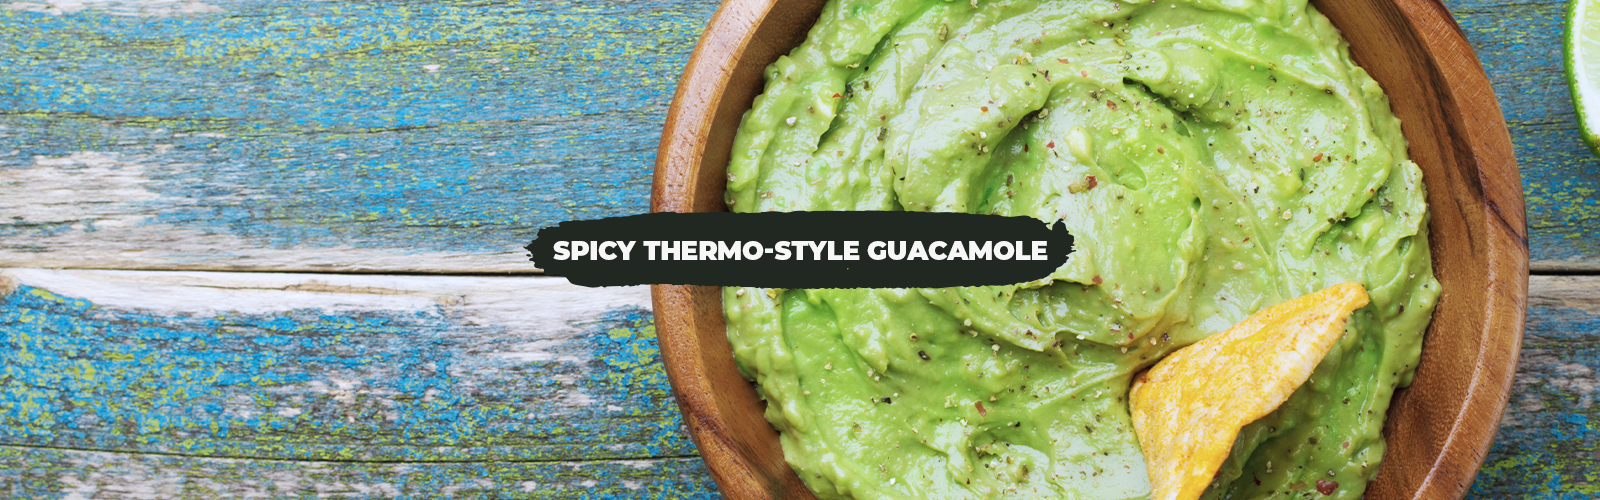 Spicy Thermo-Style Guacamole